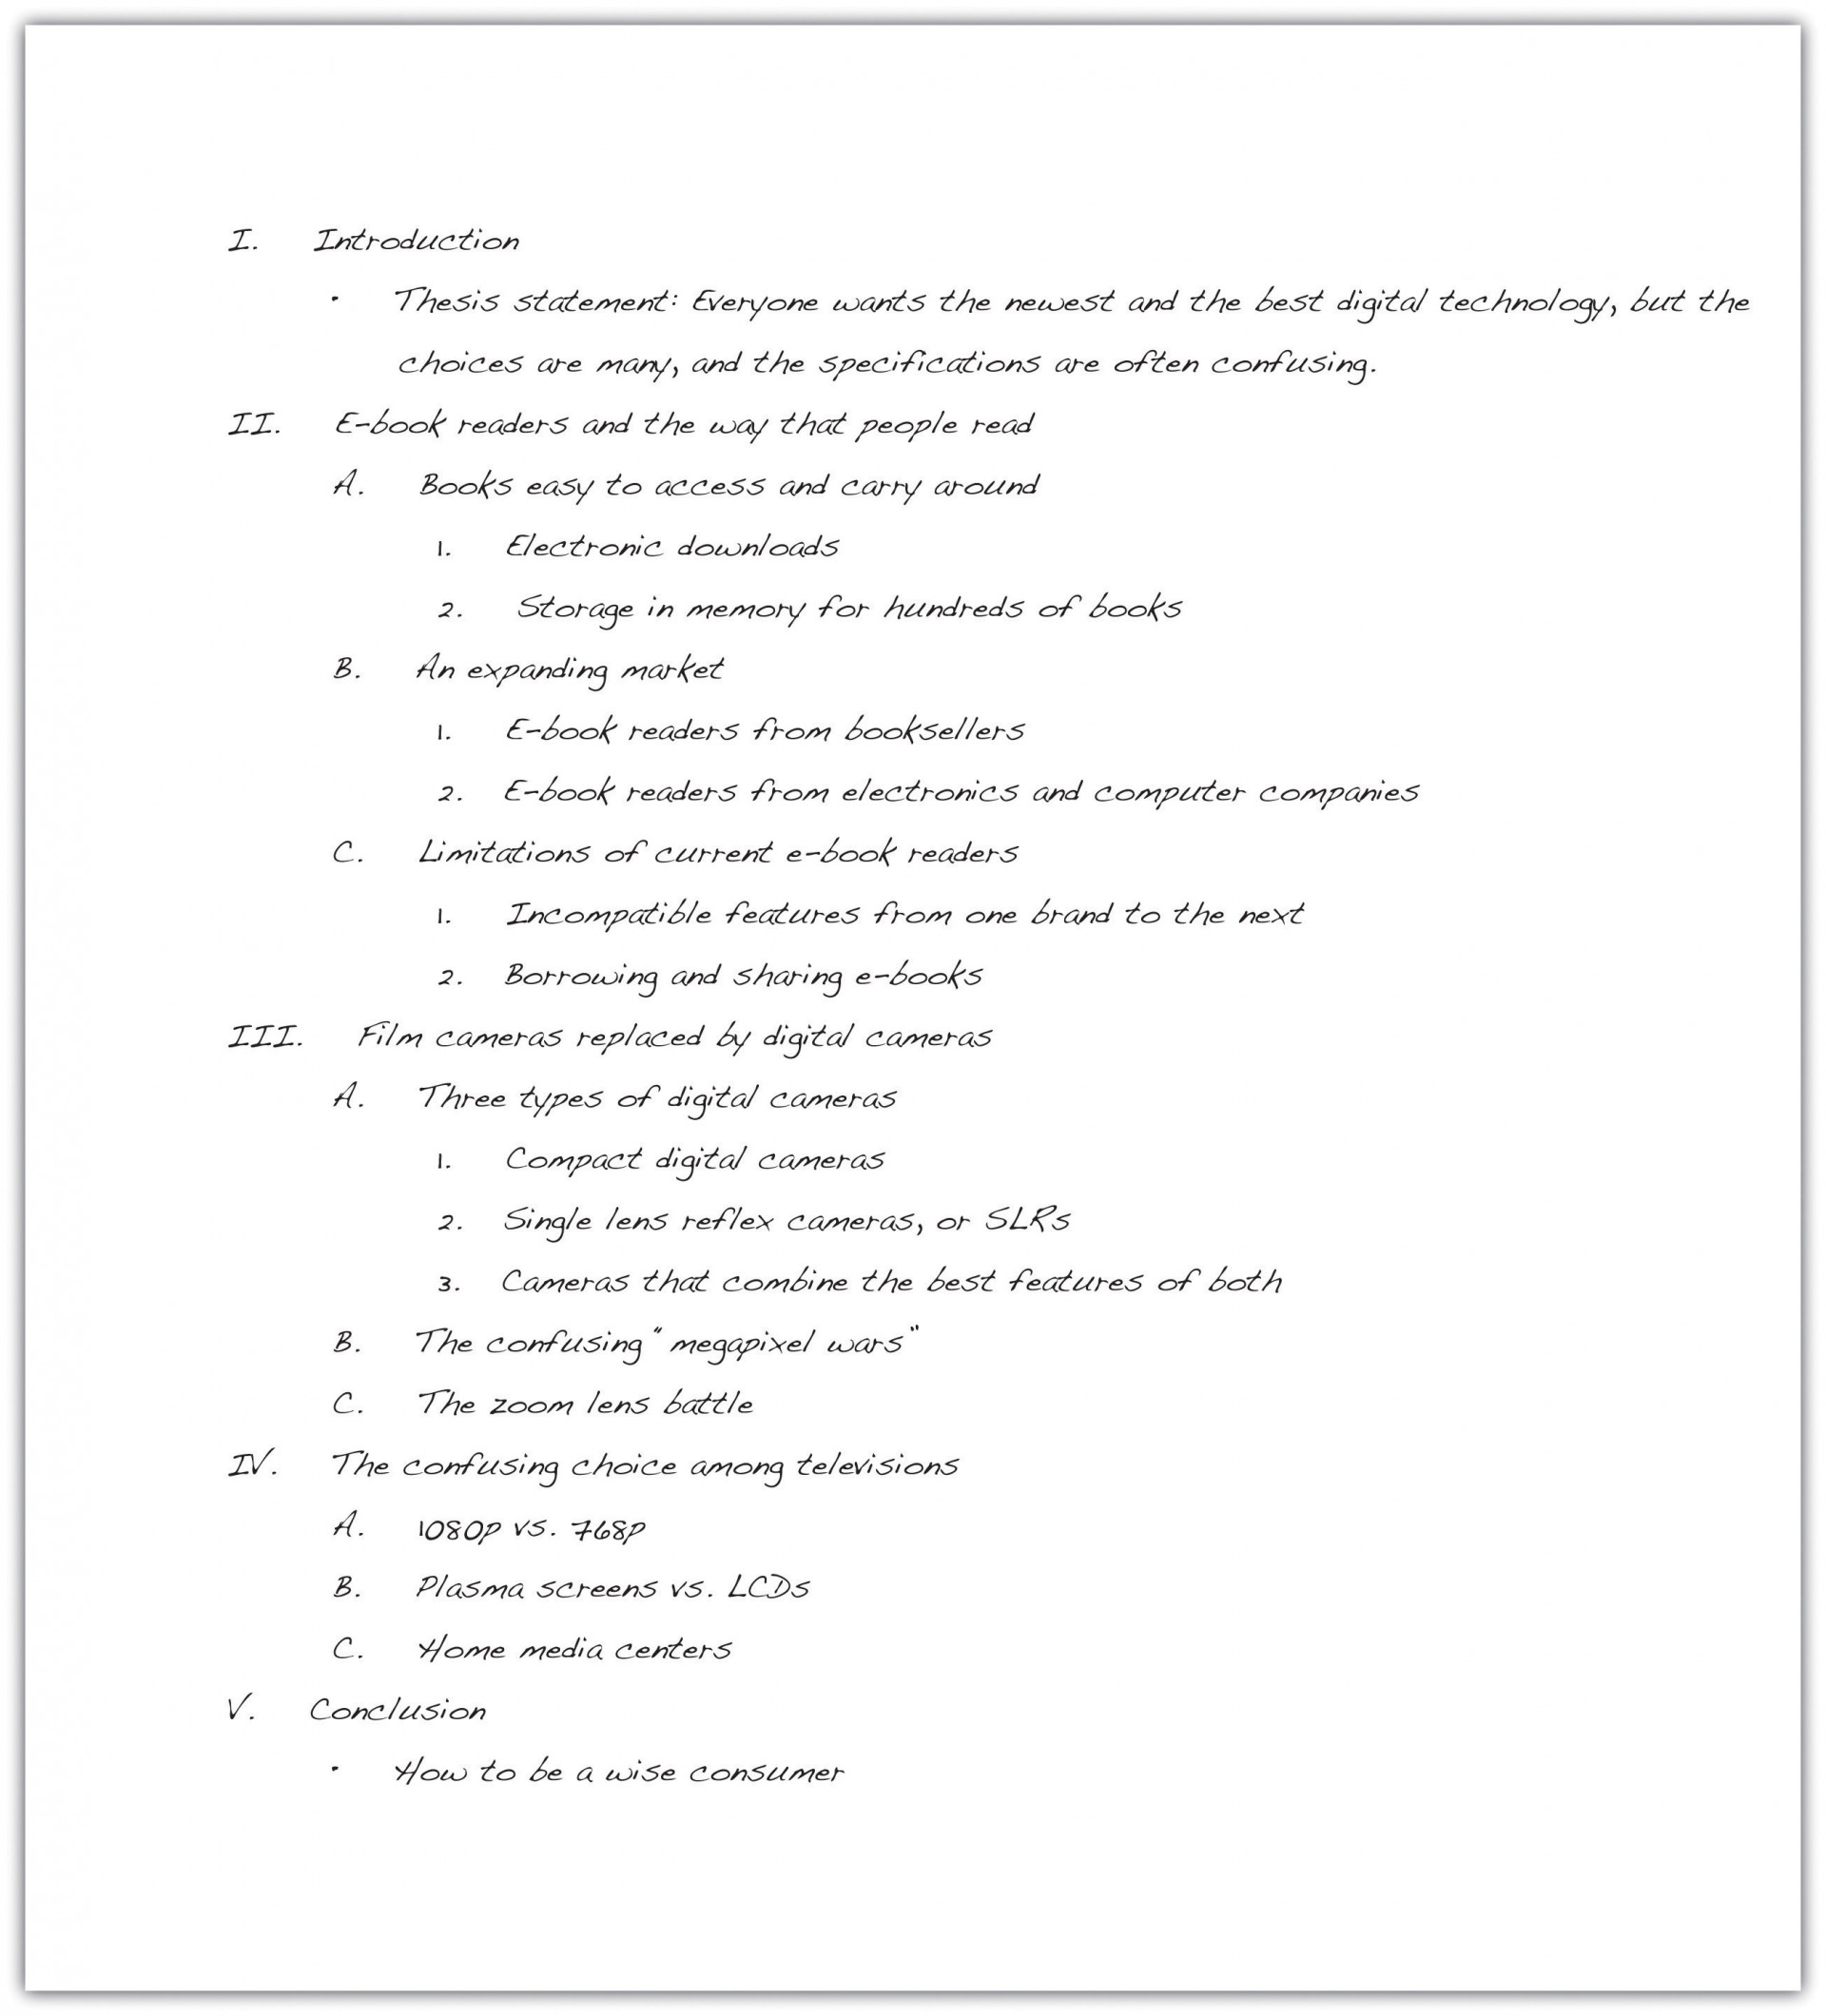 018 Research Paper Outlines Amazing Outline Mla Pdf Apa 1920